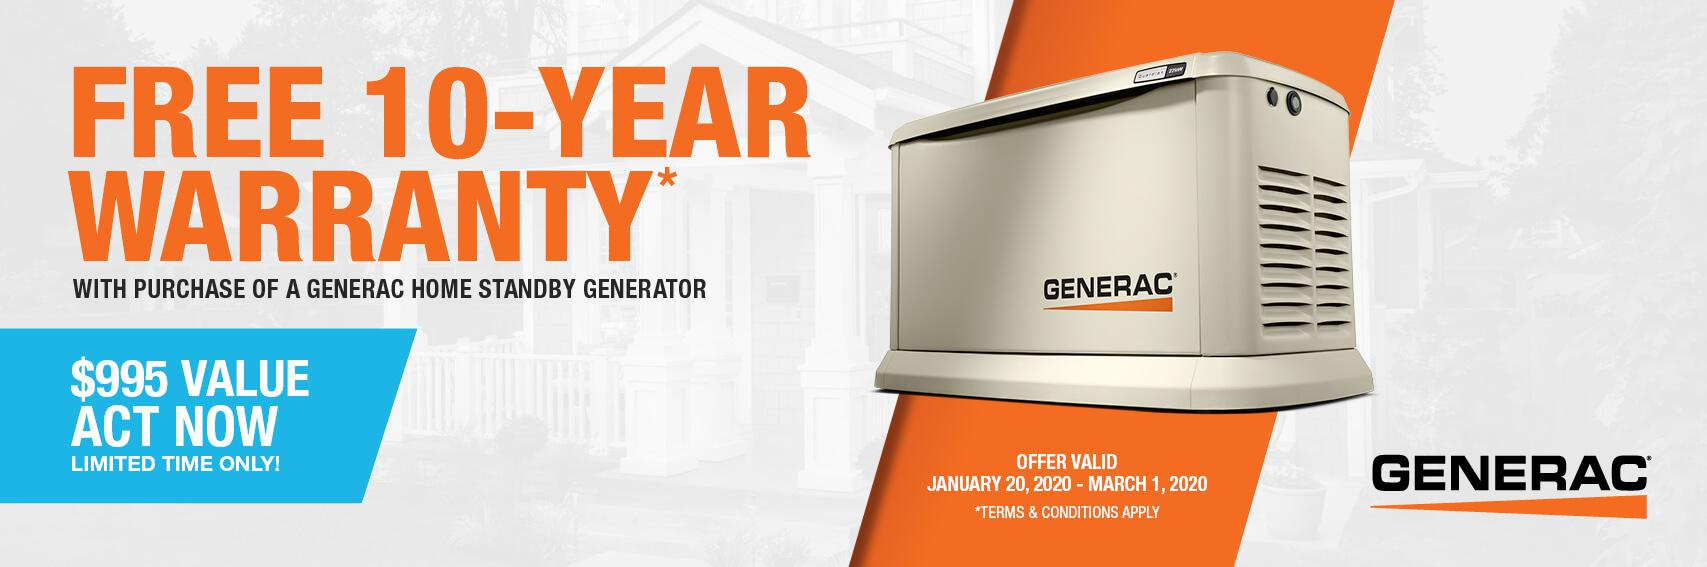 Homestandby Generator Deal | Warranty Offer | Generac Dealer | Dayton, ME